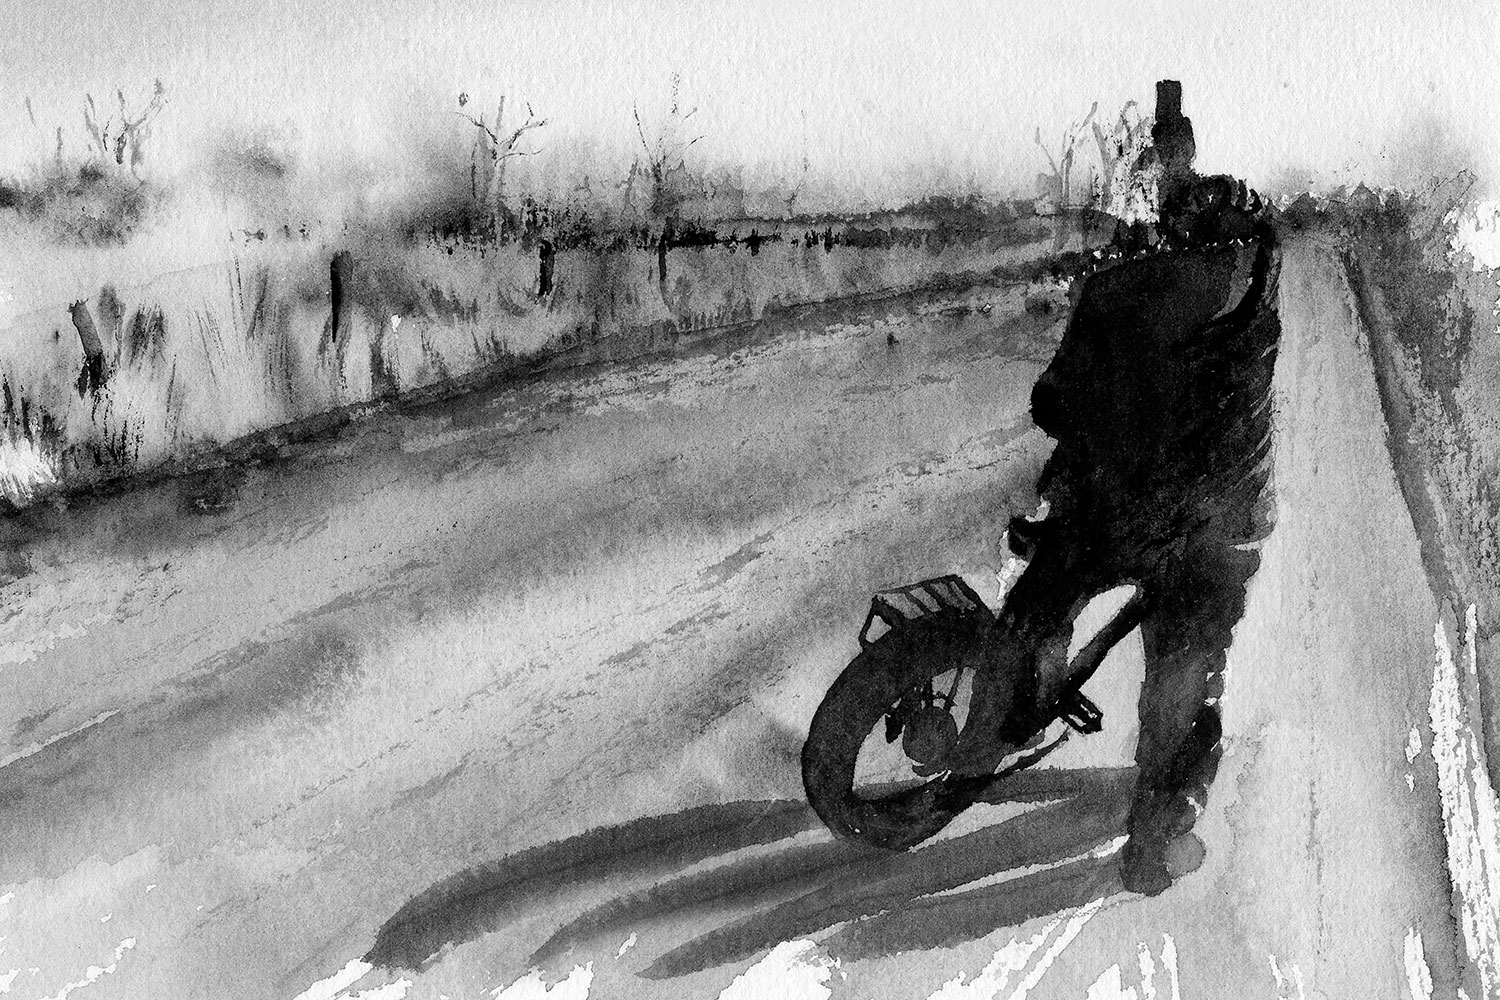 Header painting. Bicyclist taking picture on country road. Monochromatic.